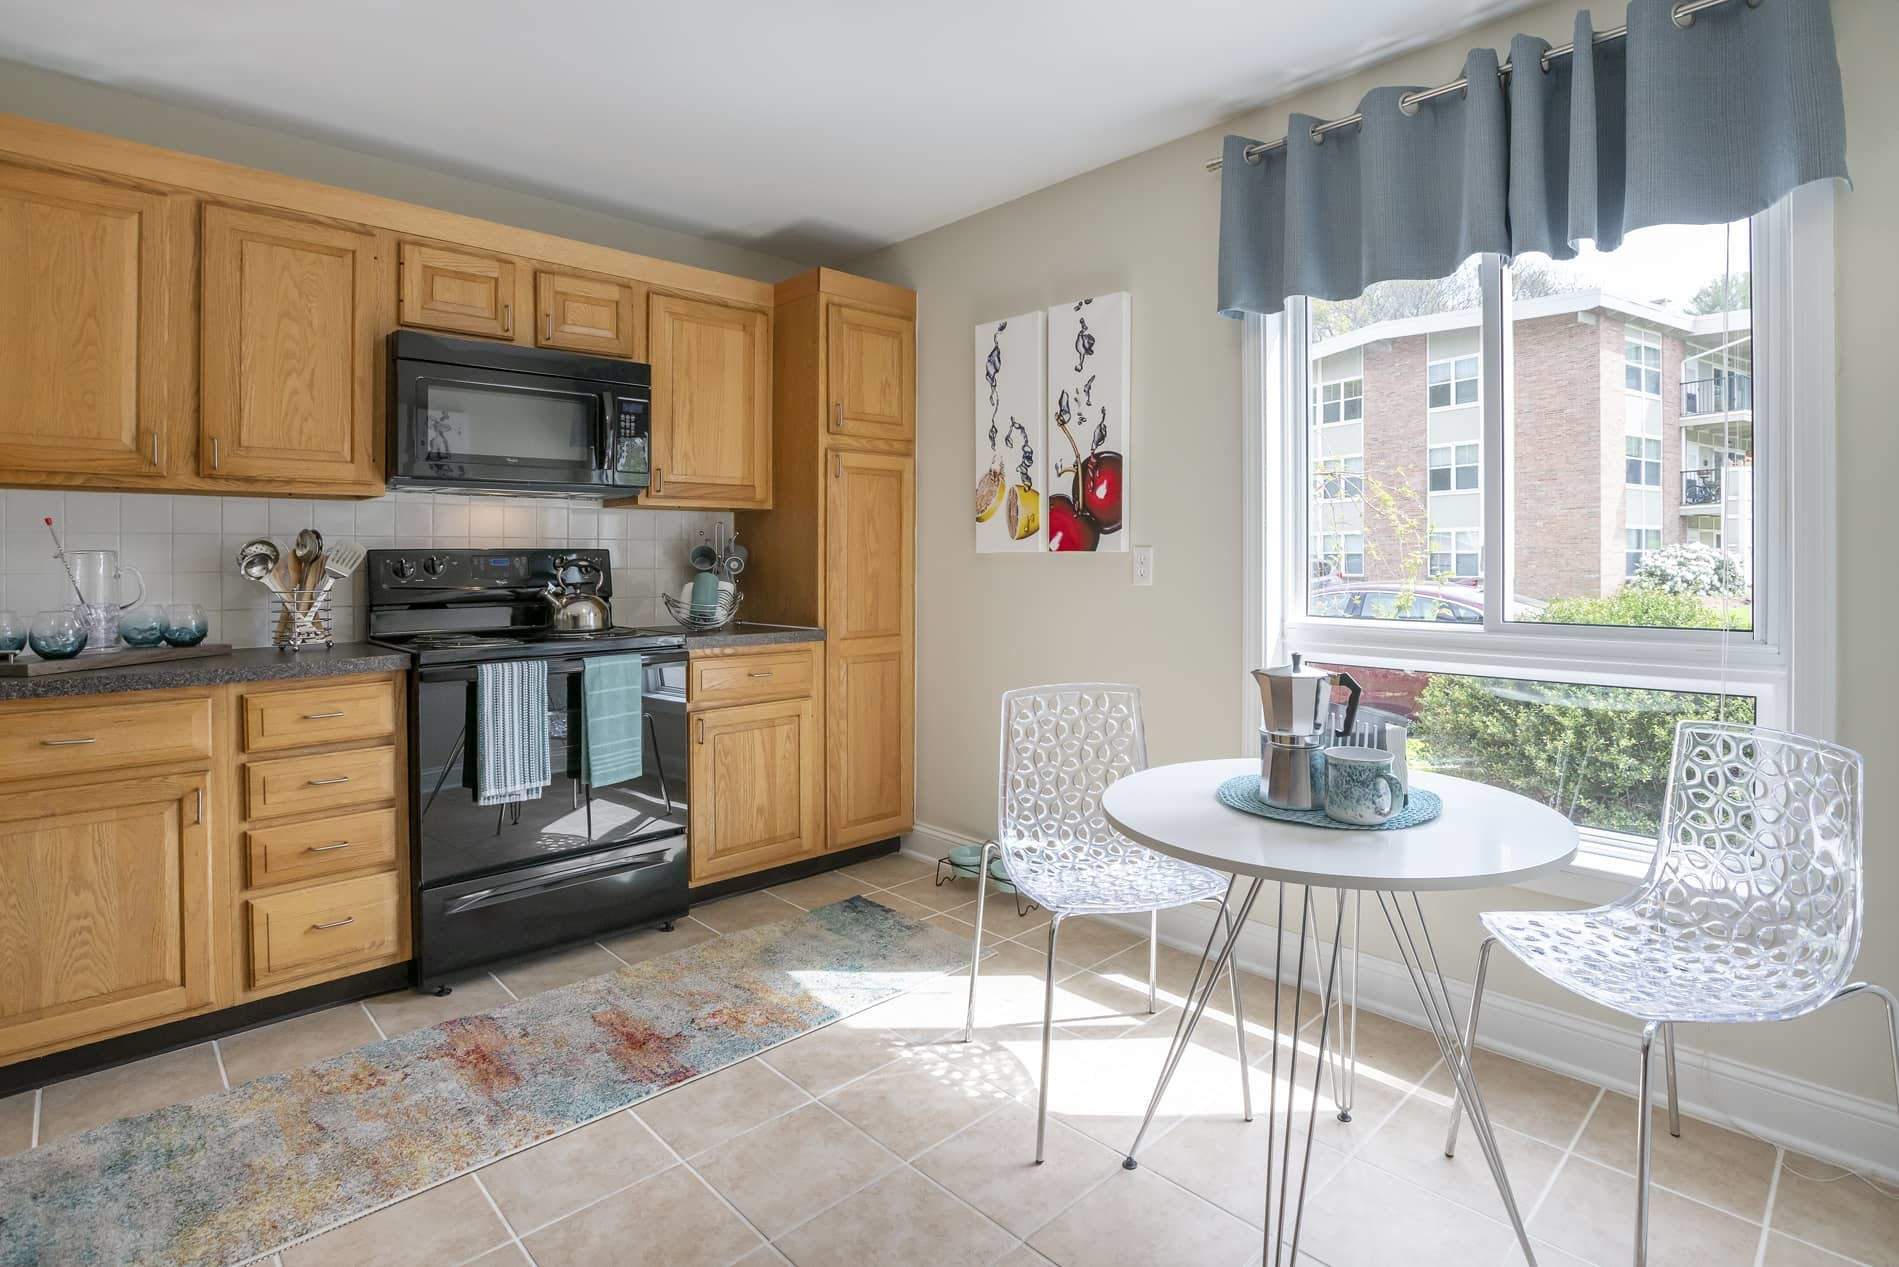 2 Beds, 1 Bath apartment in Norwood for $2,097